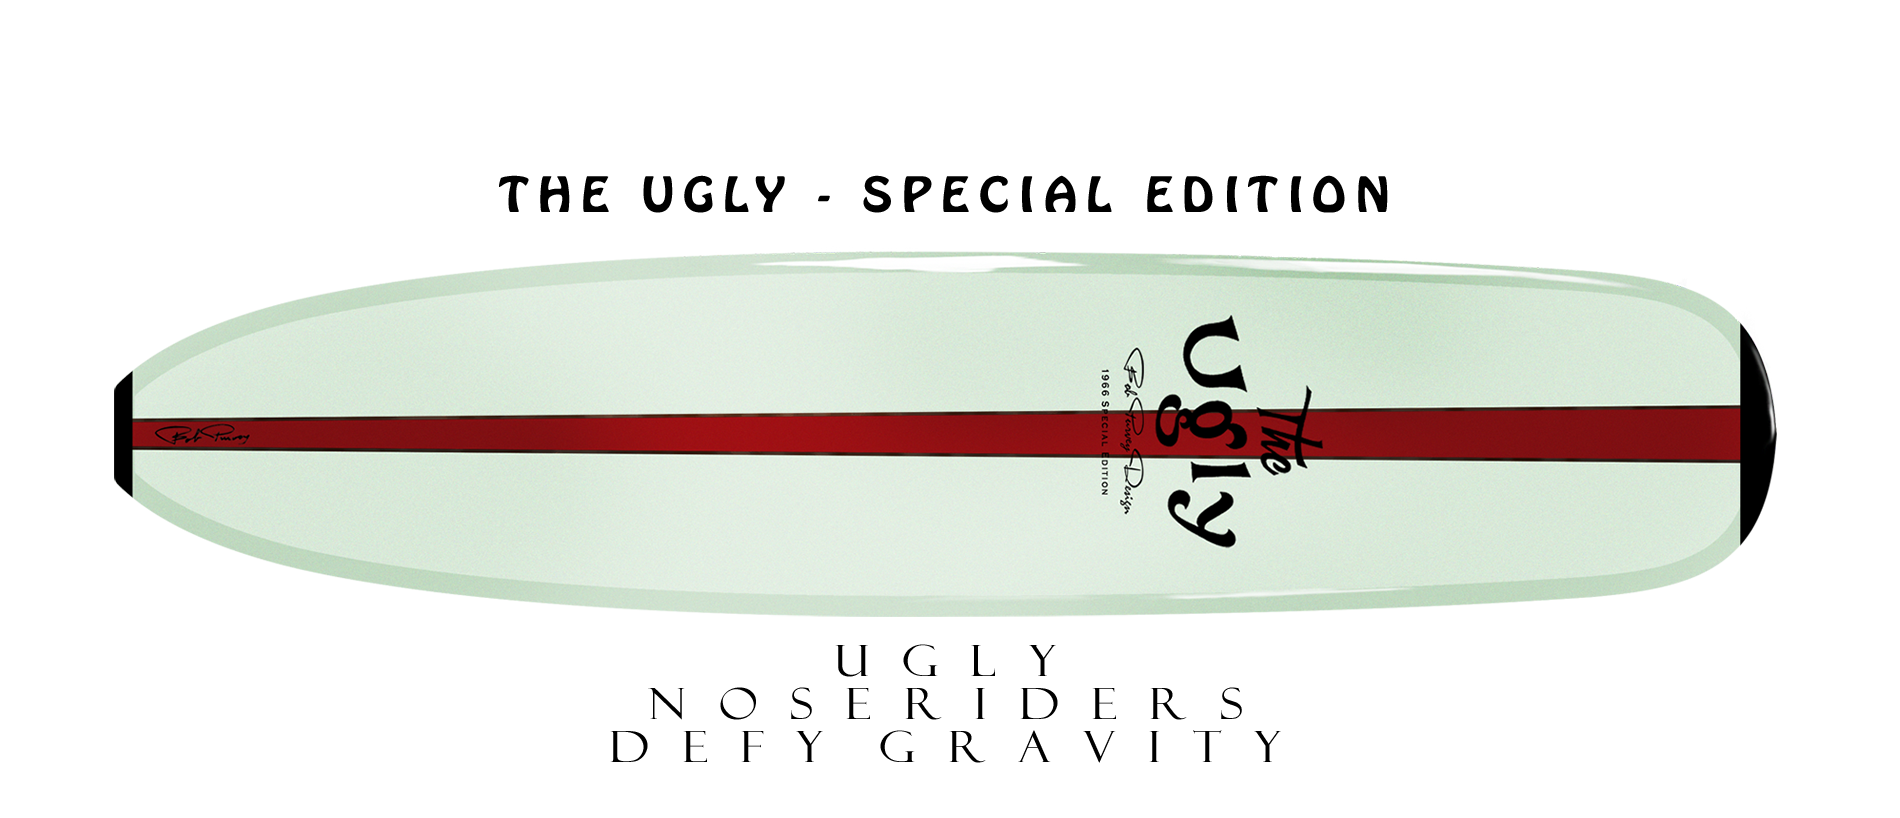 The Ugly Surfboard – Home